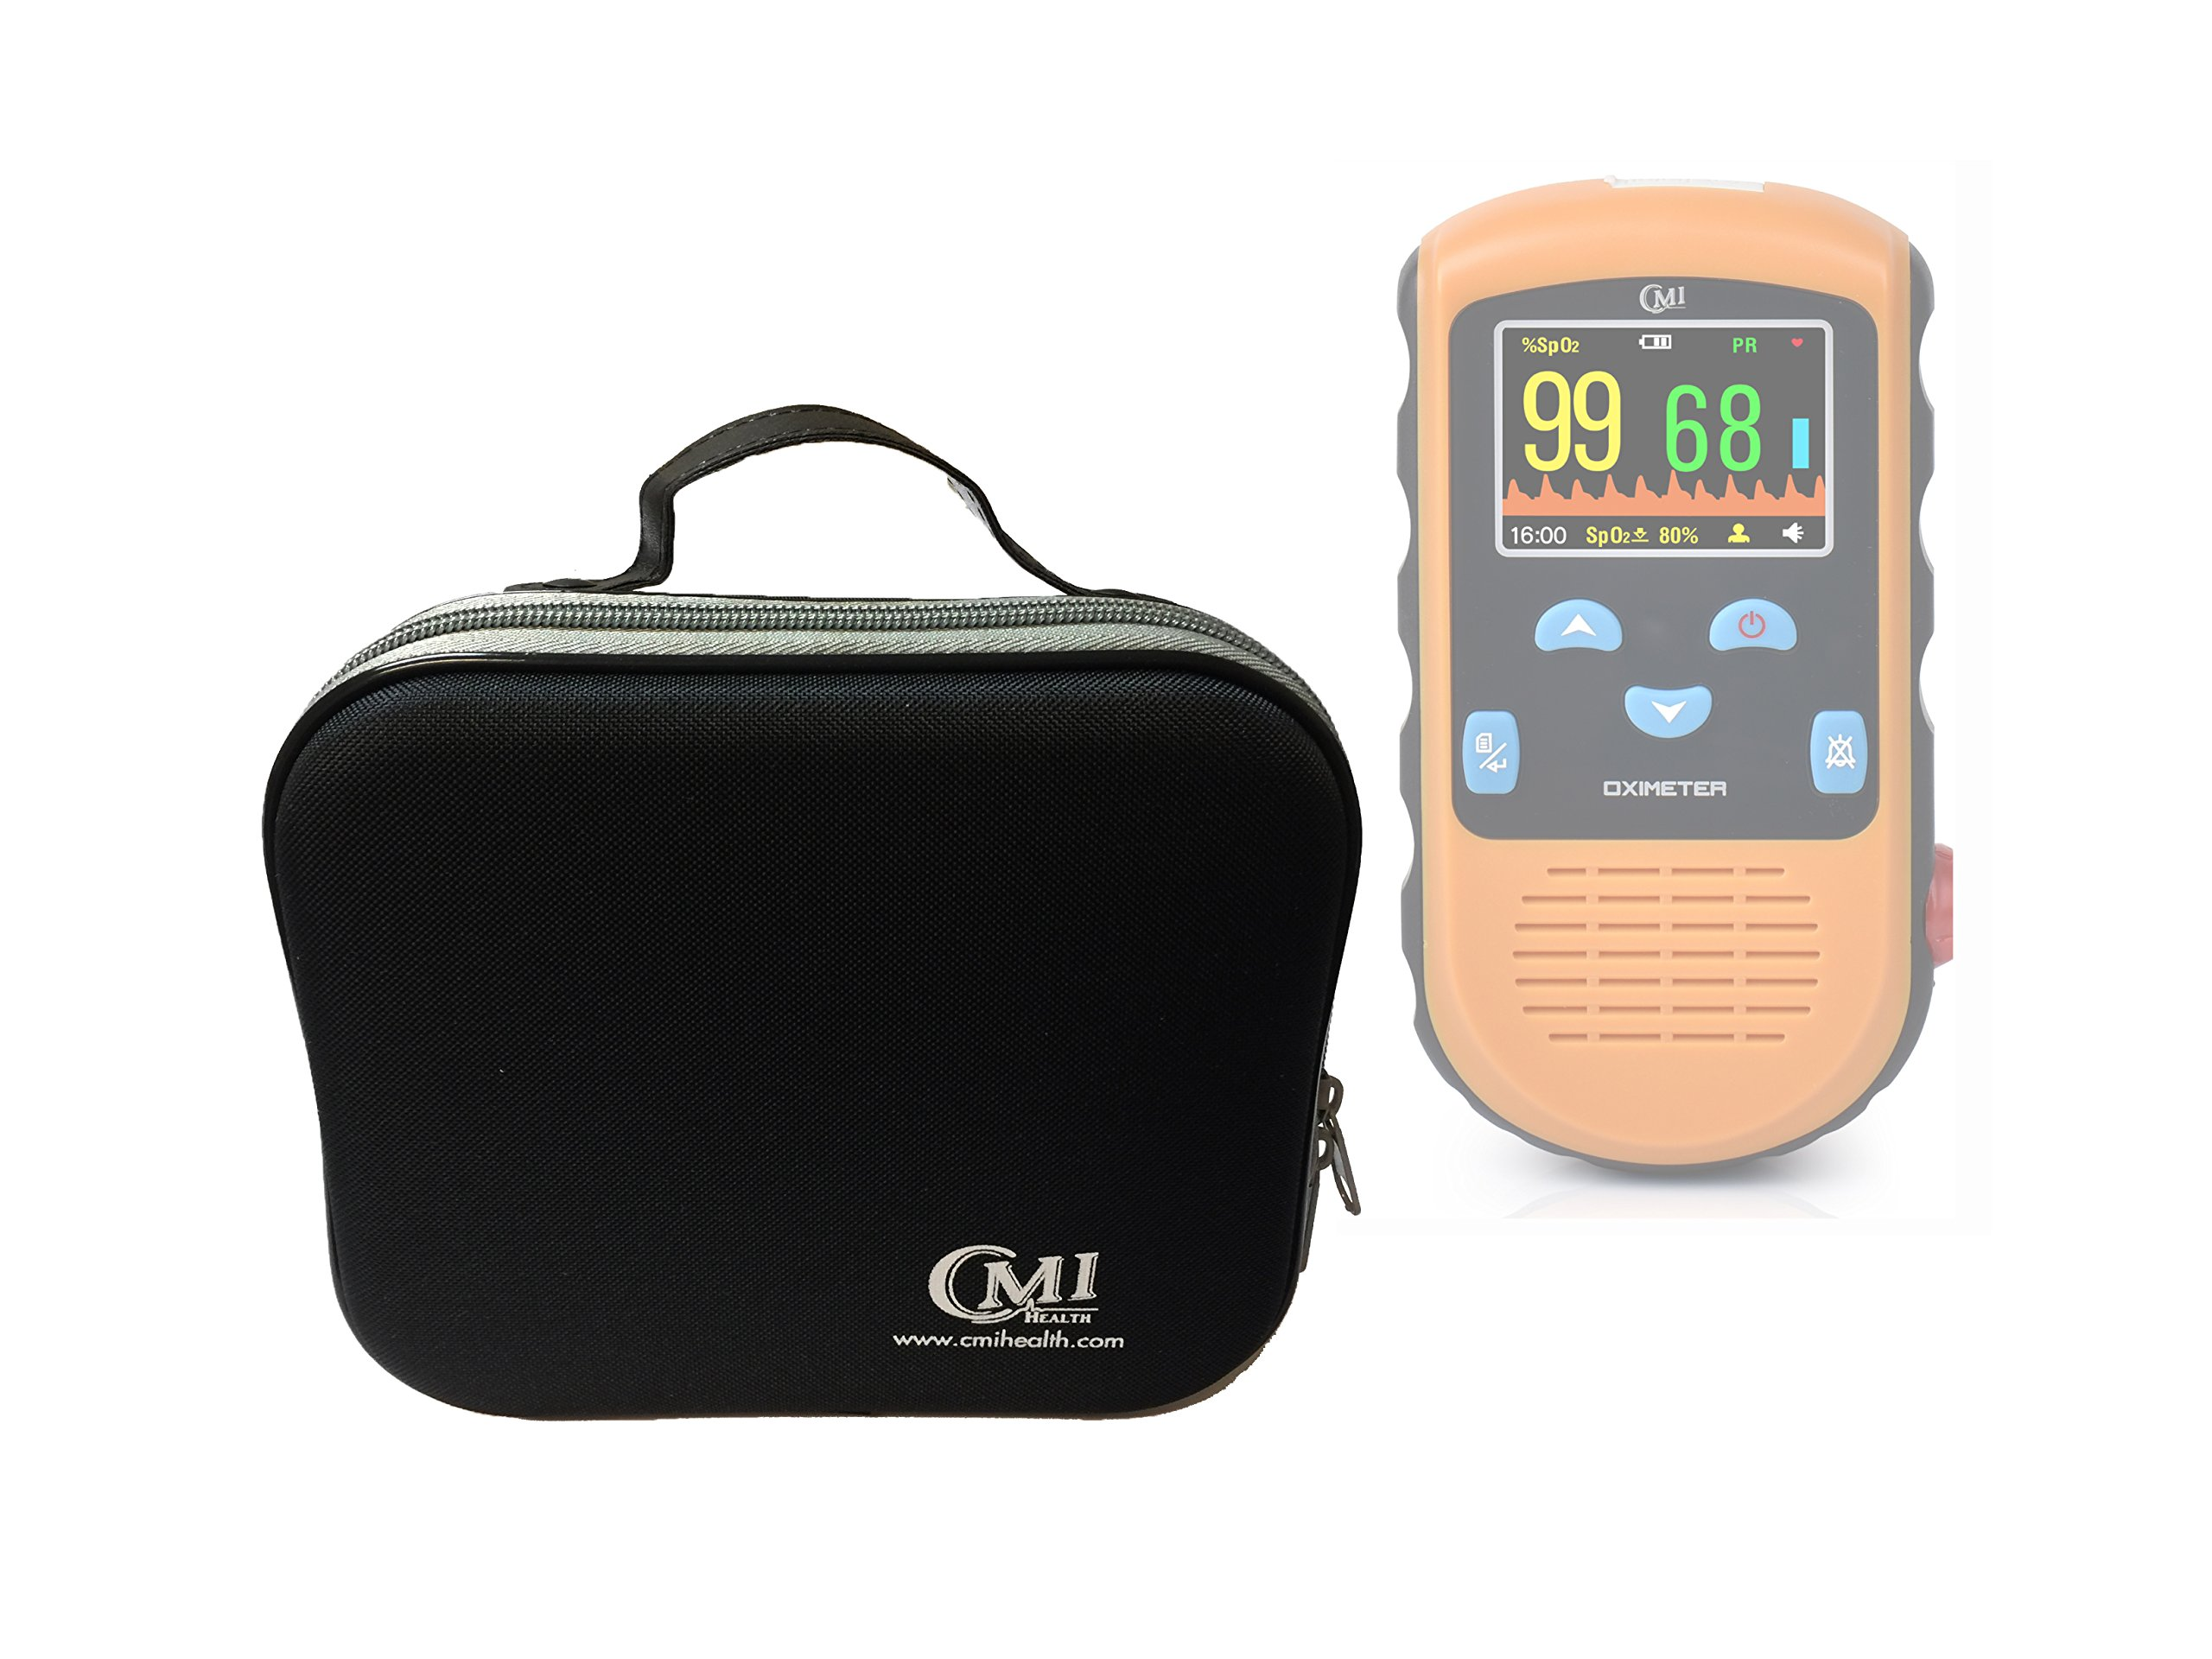 Carry Case for CMI Handheld Pulse Oximeter